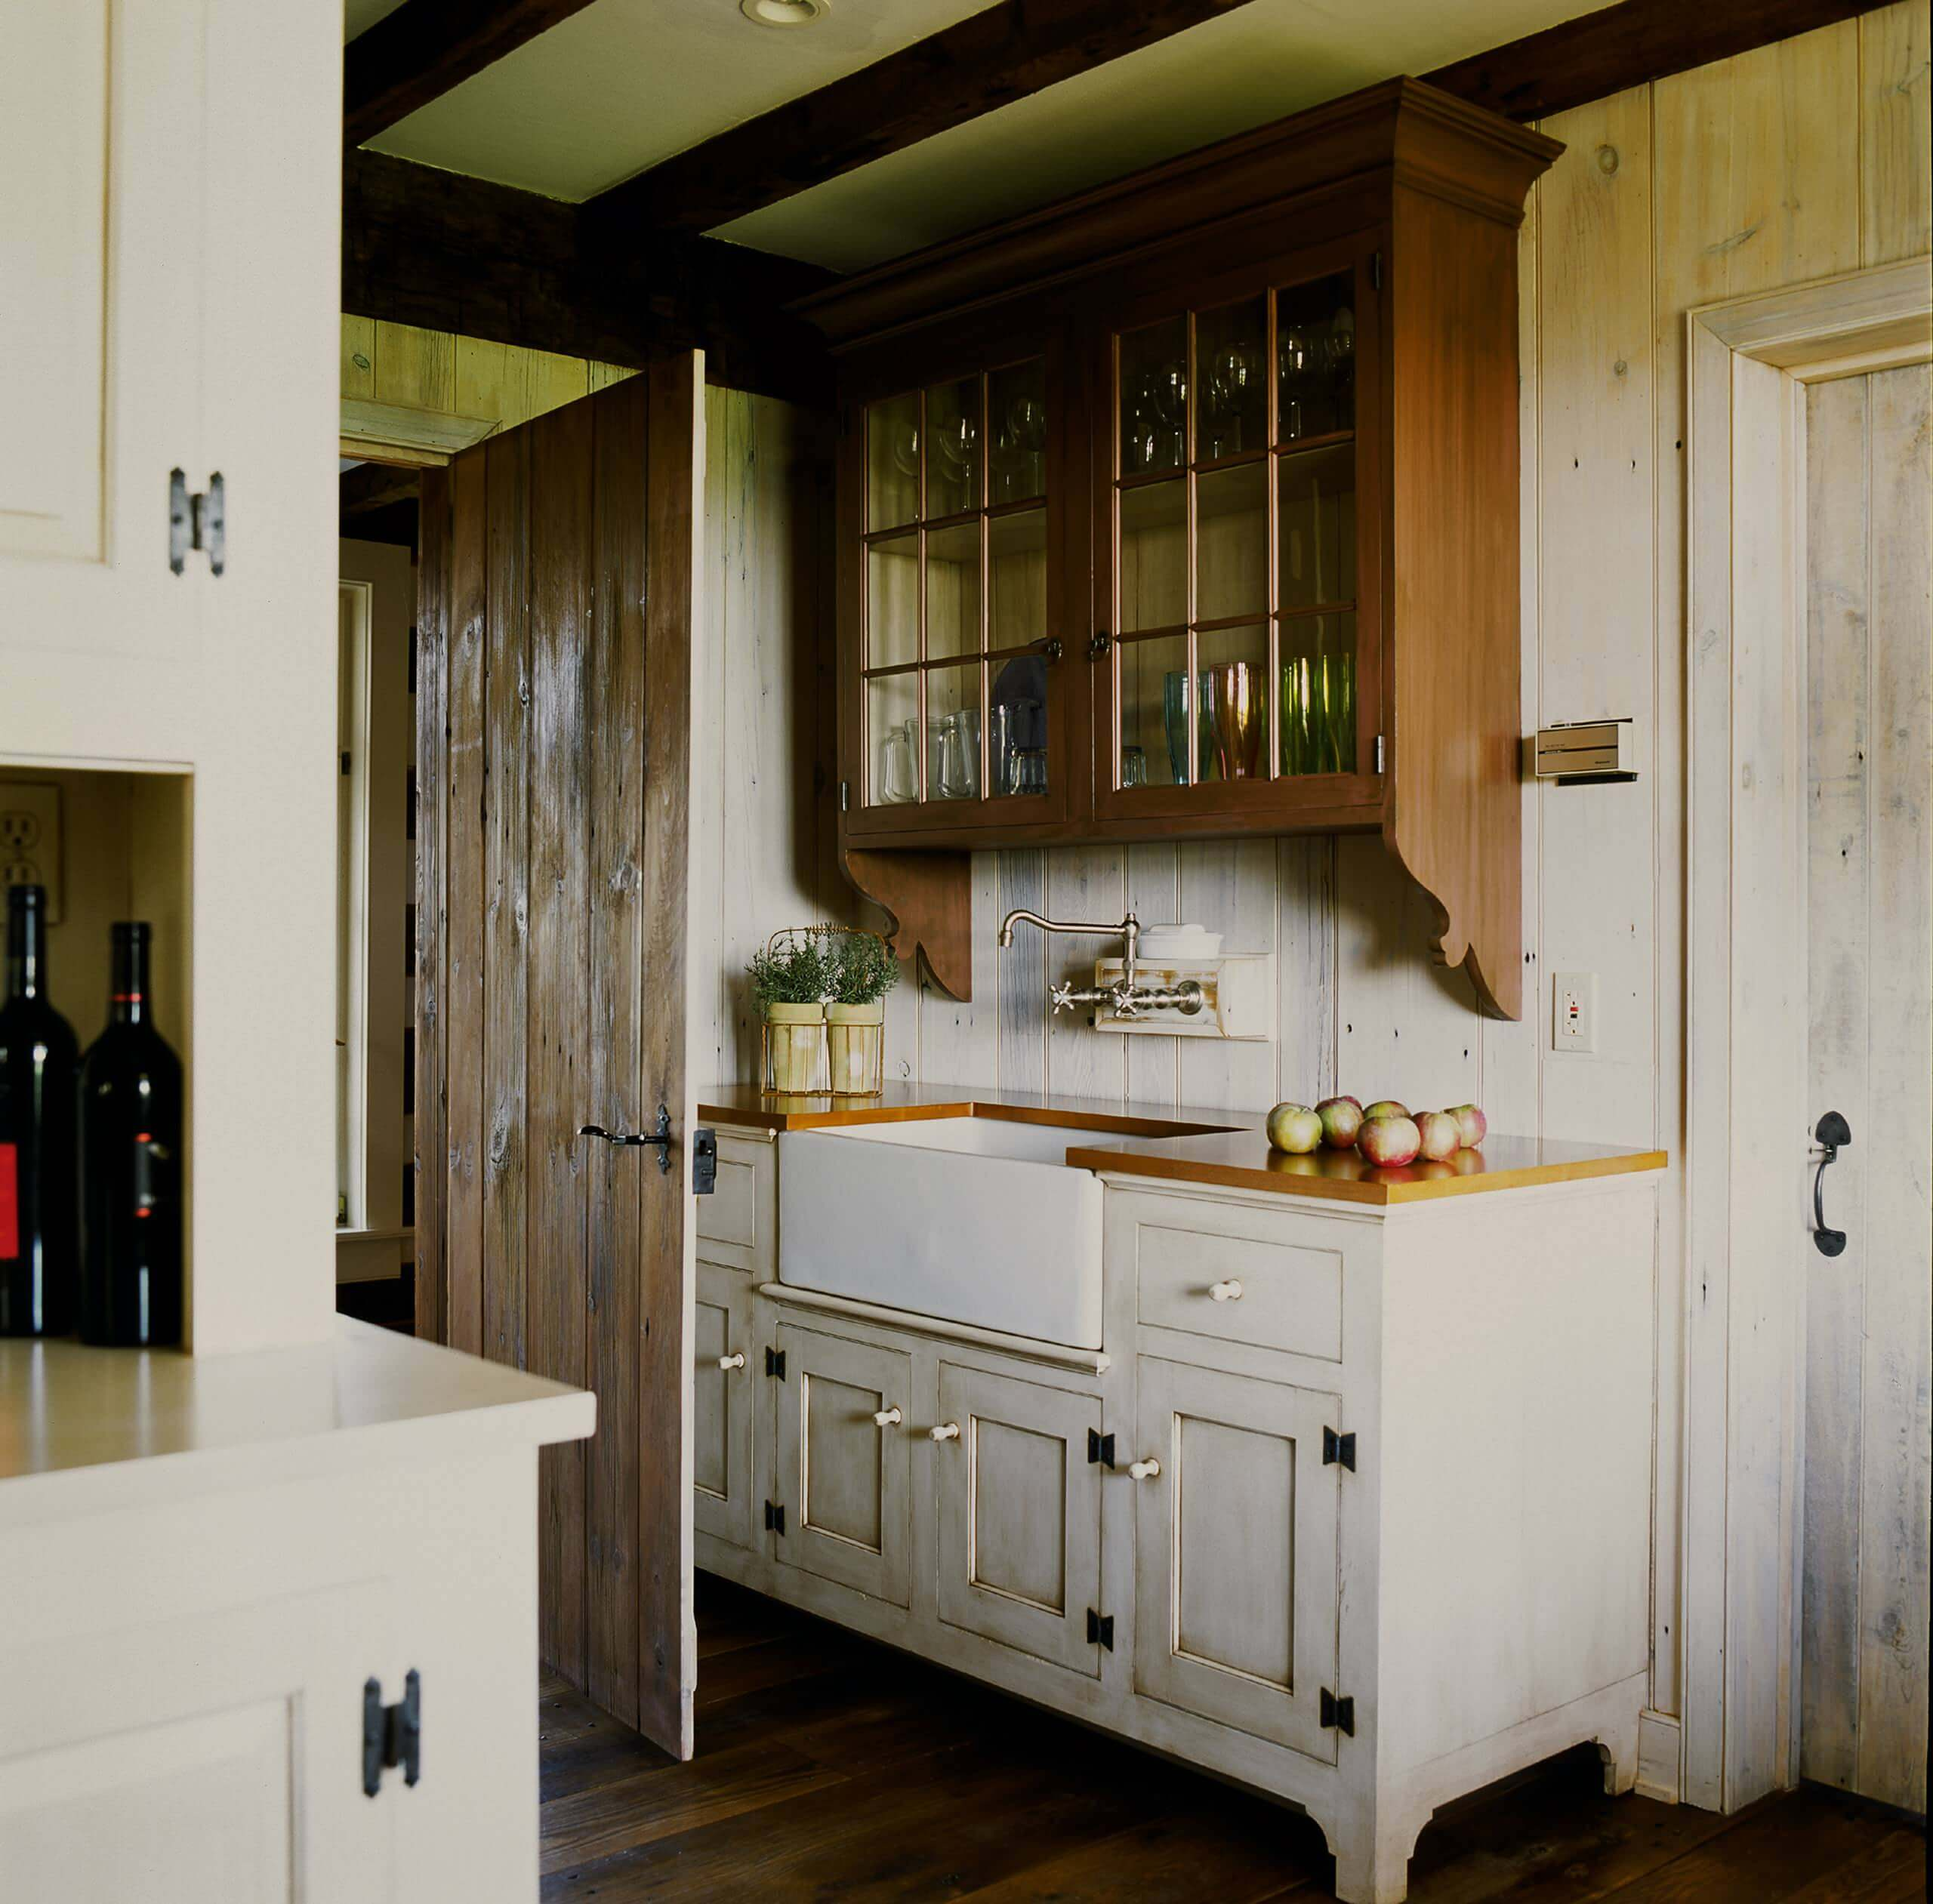 23 Best Ideas of Rustic Kitchen Cabinet You'll Want to Copy on Farmhouse Rustic Kitchen  id=21564